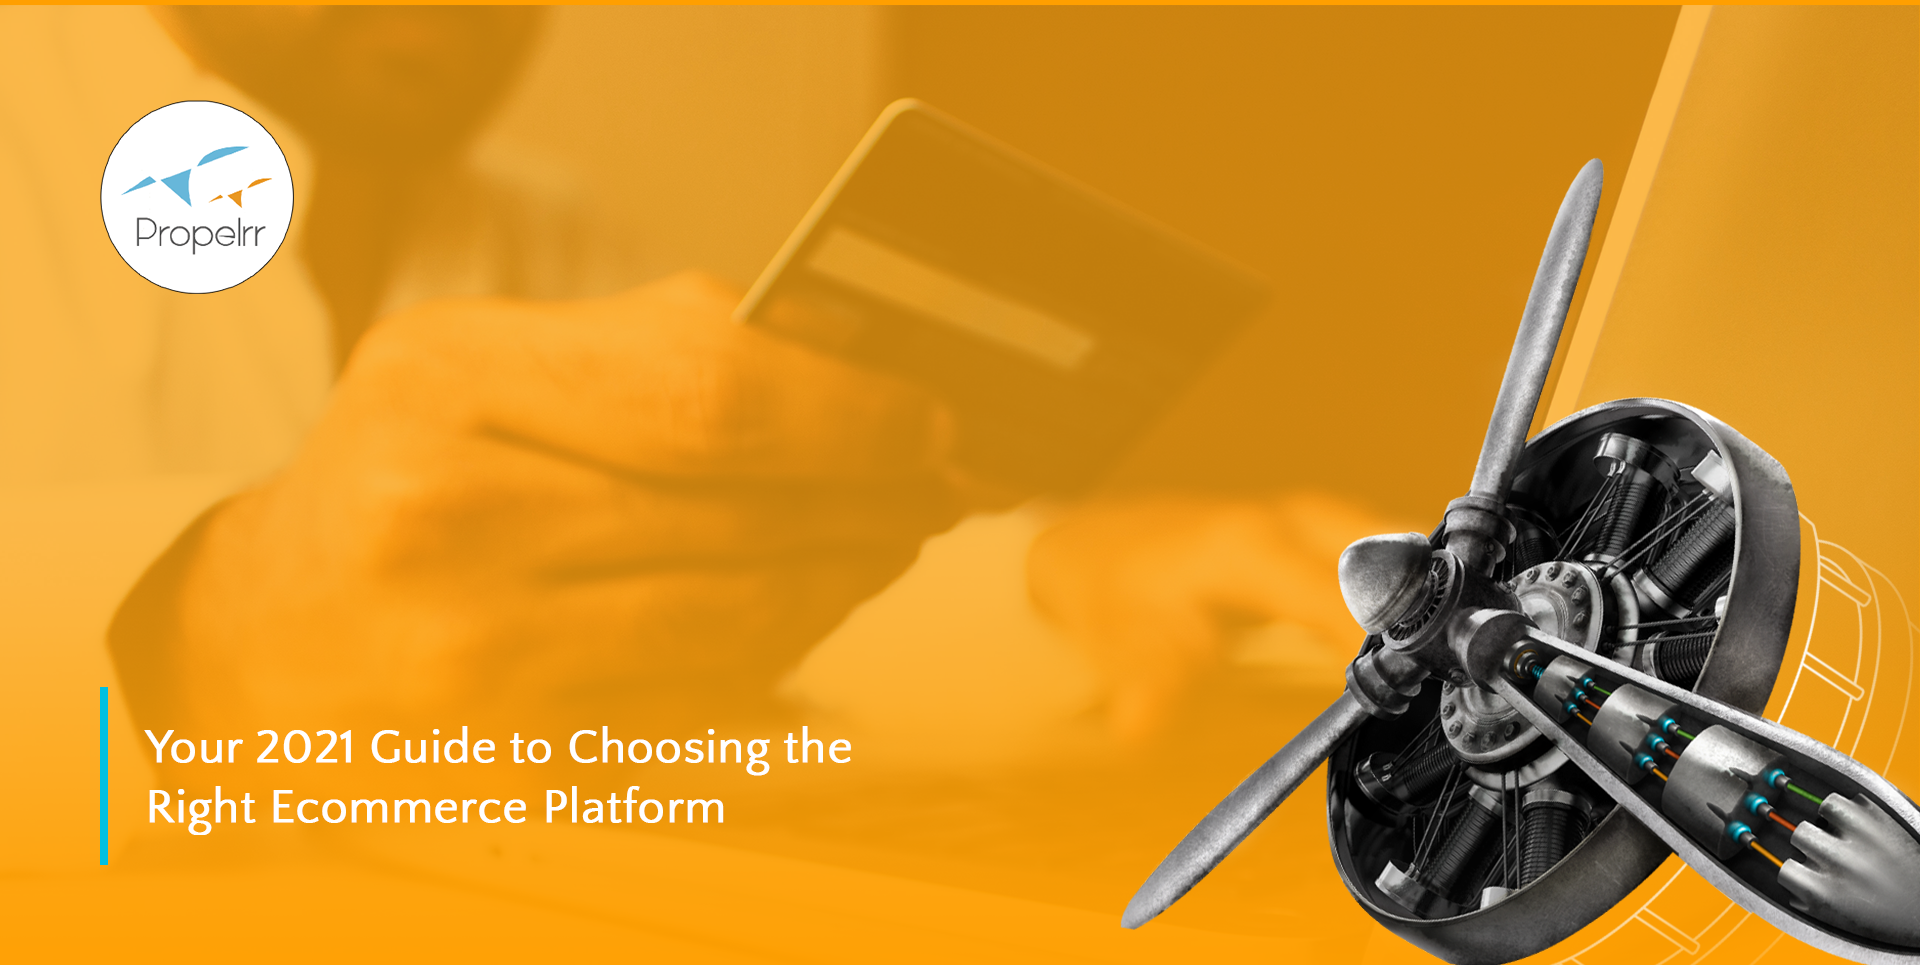 Crucial Considerations in Choosing the Right Ecommerce Platform